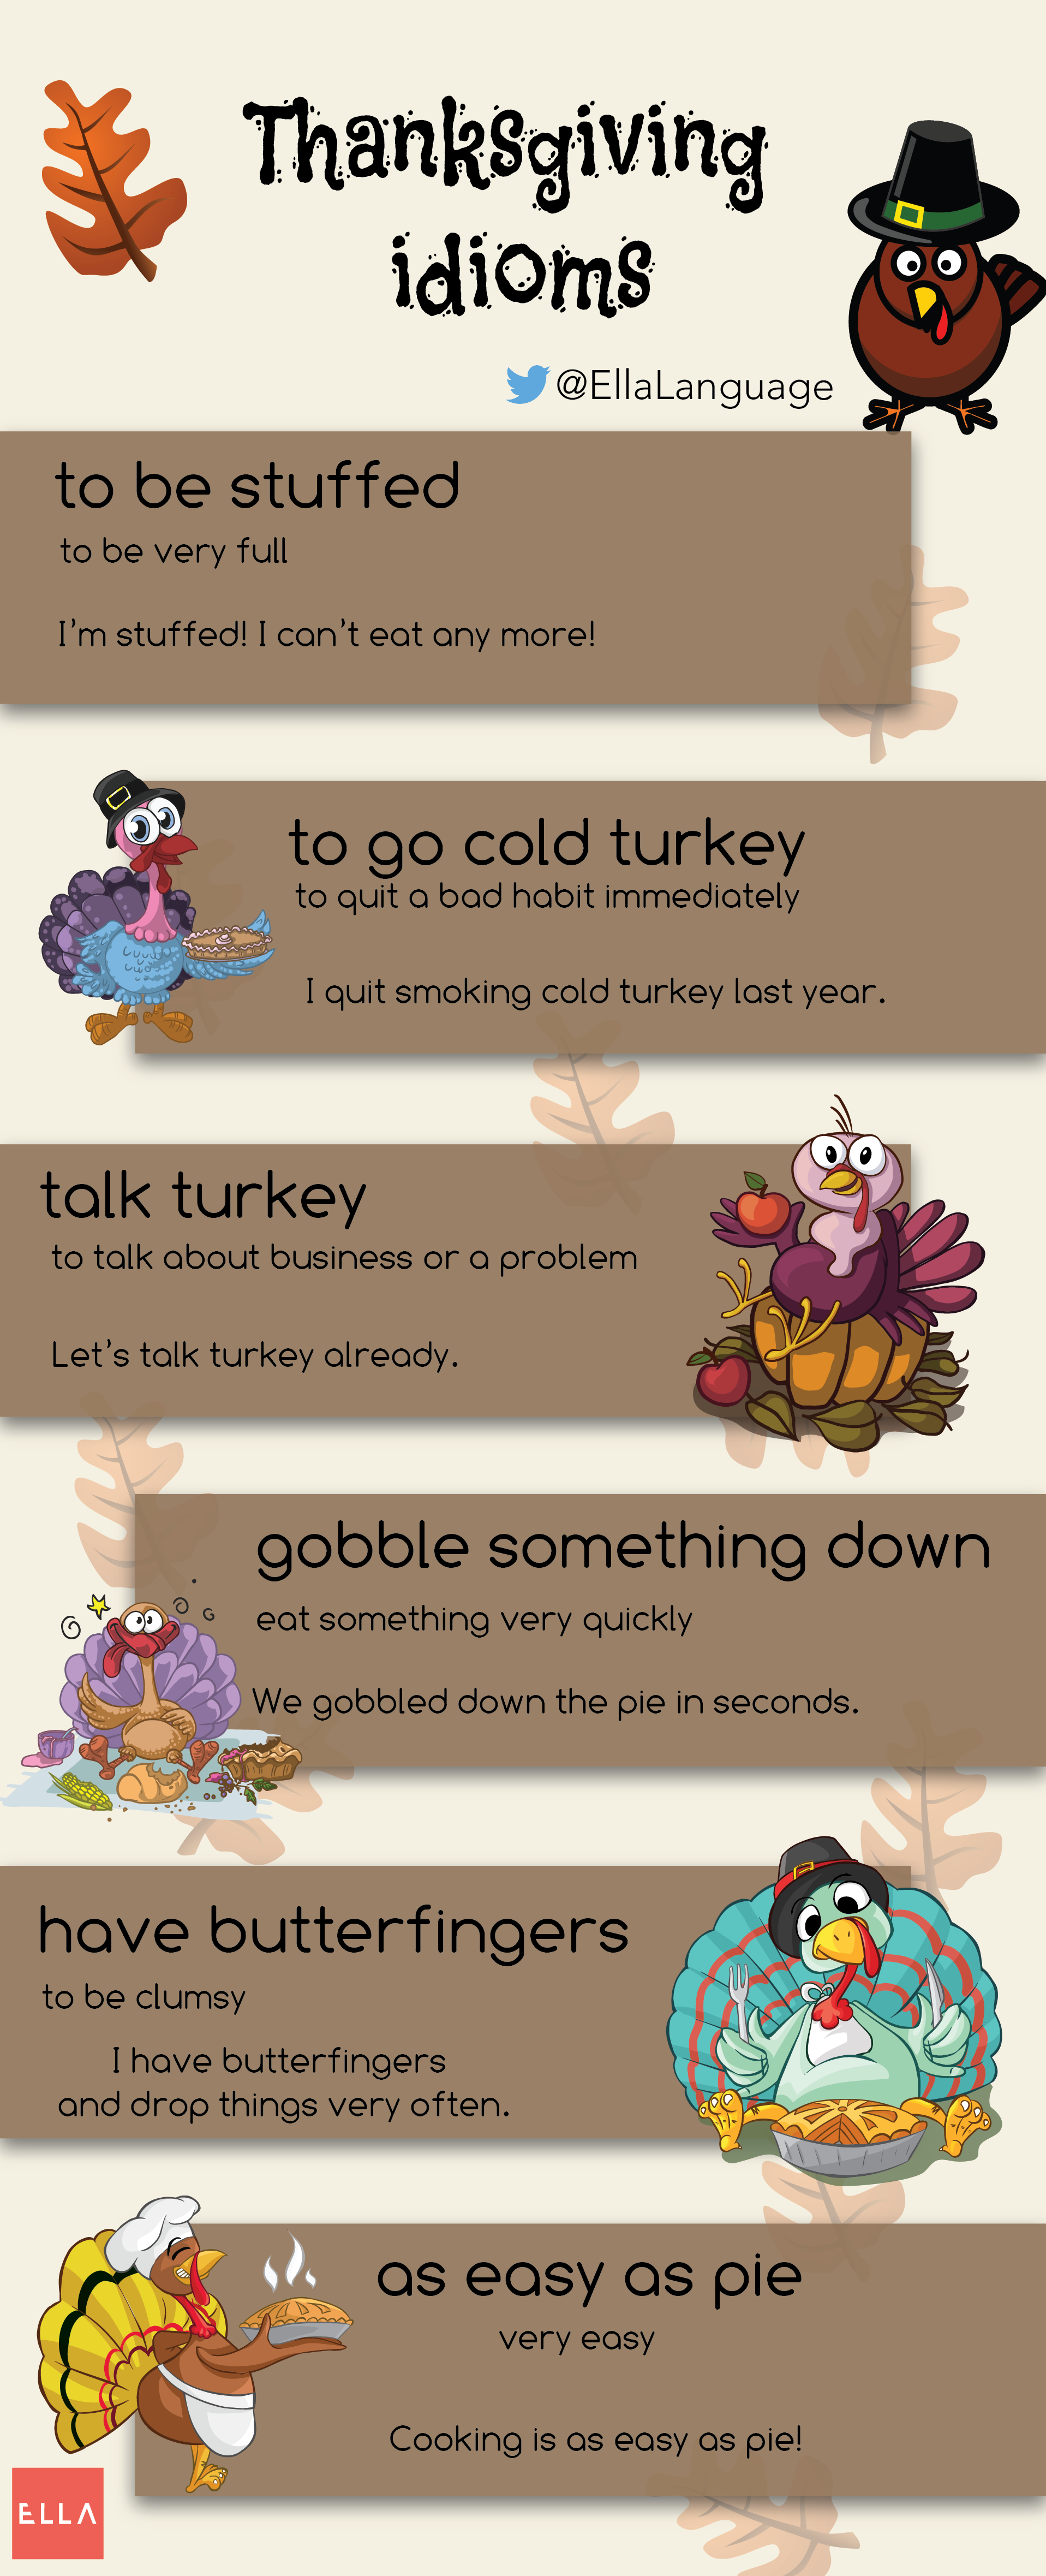 Thanksgiving Idioms Infographic